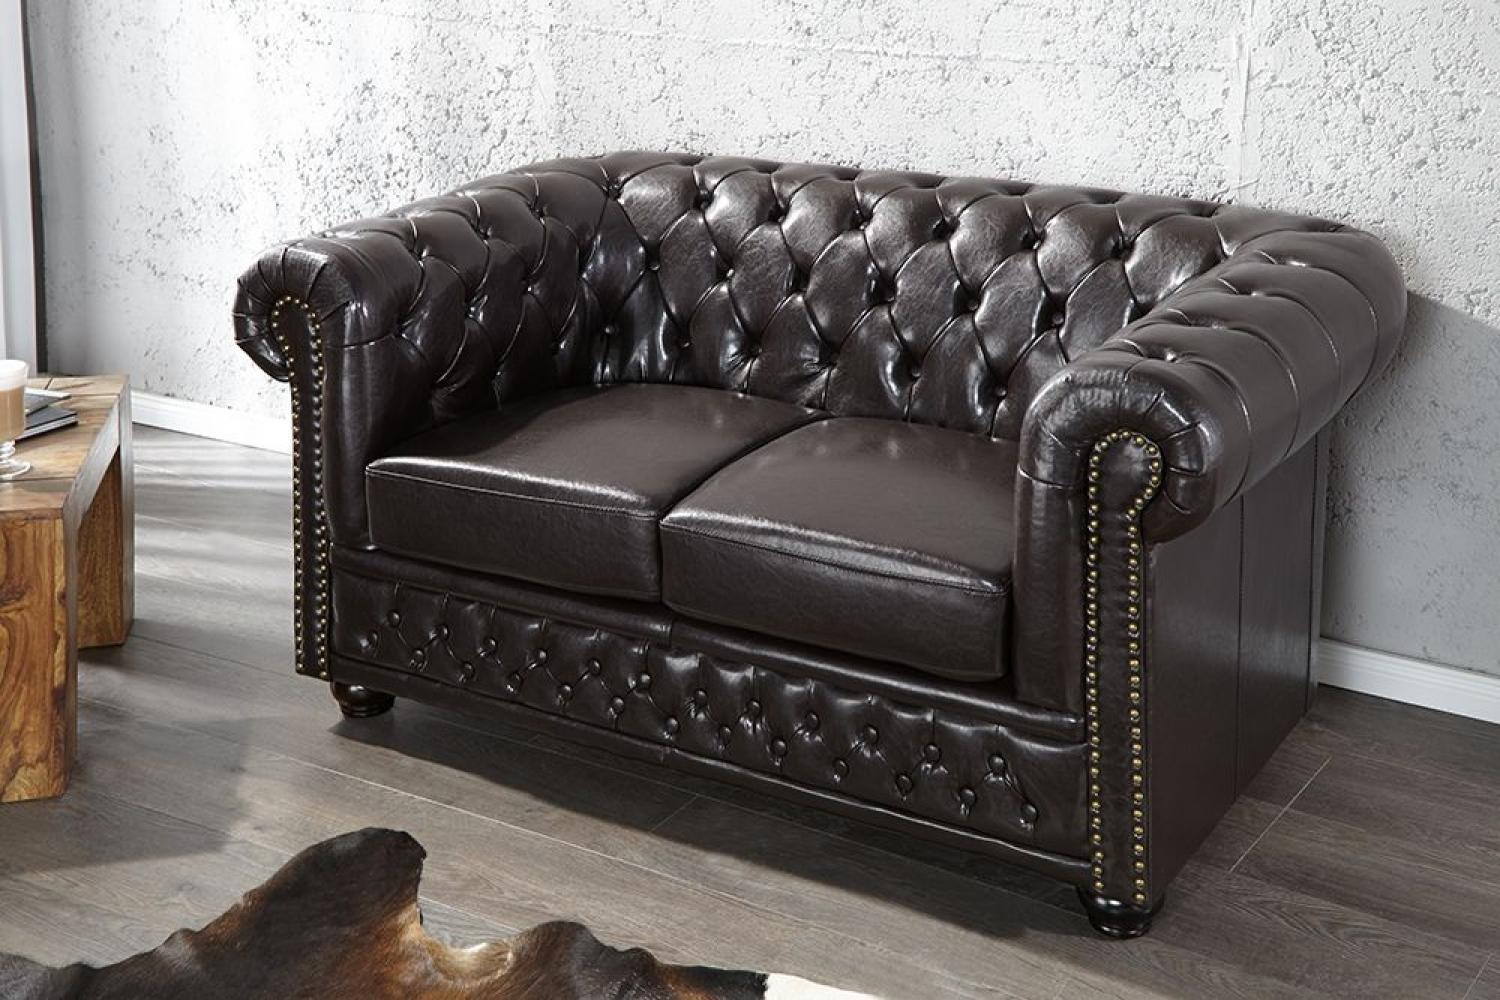 Canap chesterfield convertible 2 places id e inspirante pour - Convertibles 2 places ...